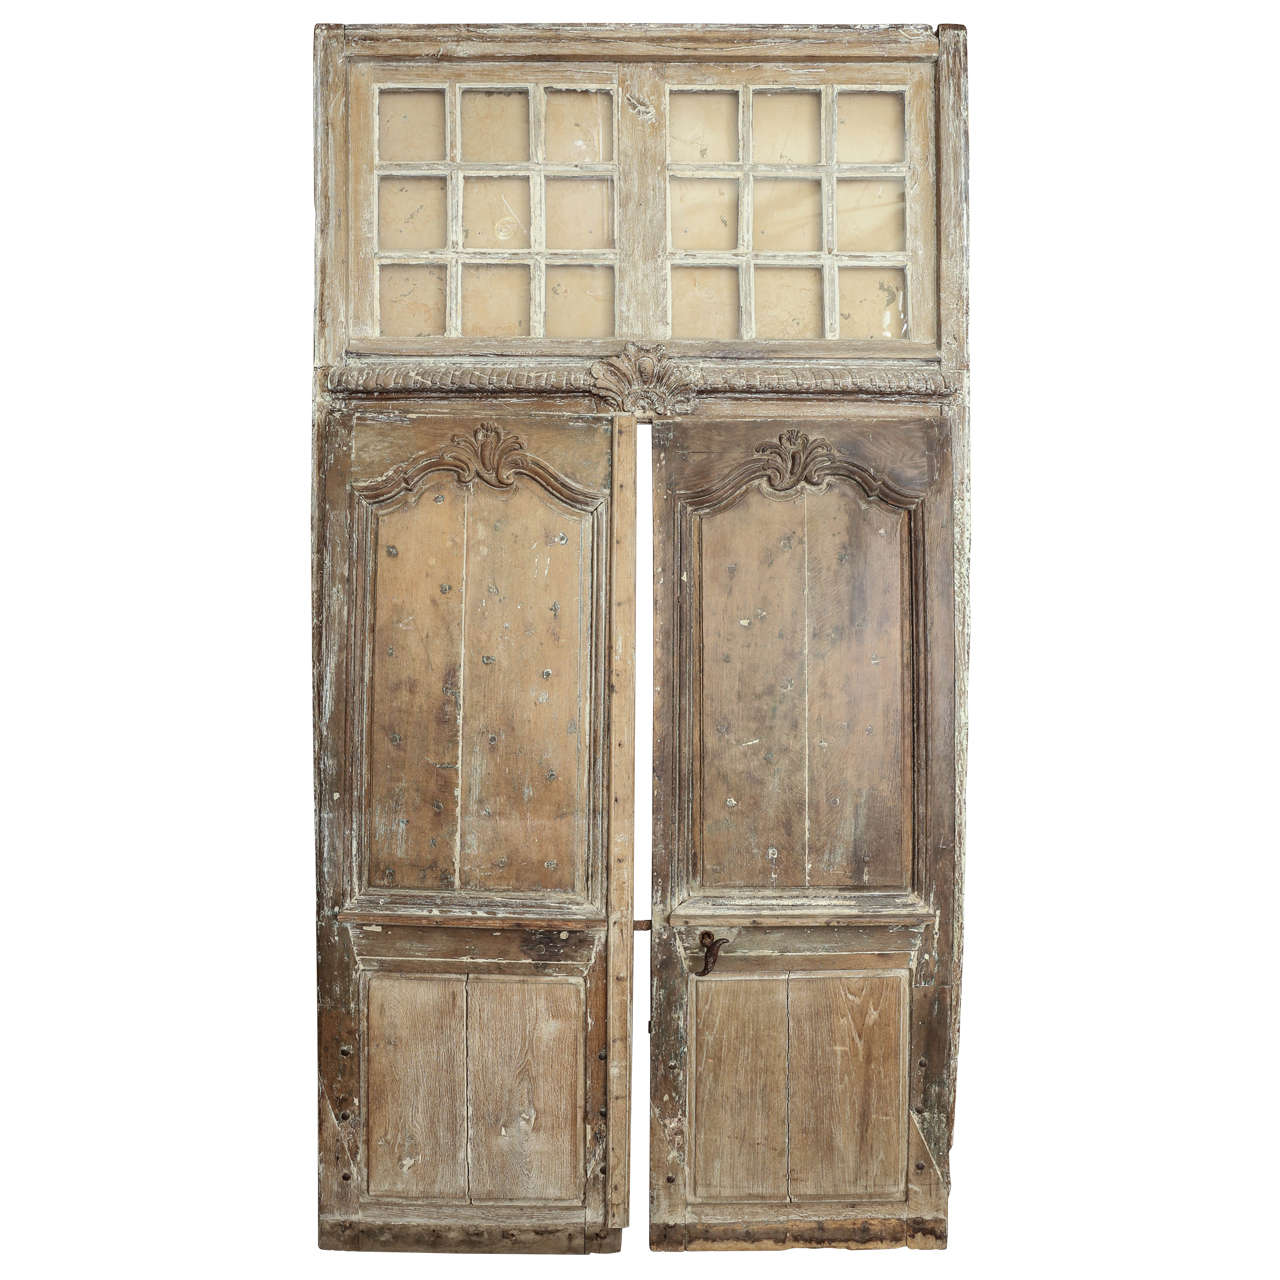 Pair of 18th Century Provençal Doors with Transom For Sale  sc 1 st  1stDibs & Pair of 18th Century Provençal Doors with Transom For Sale at 1stdibs